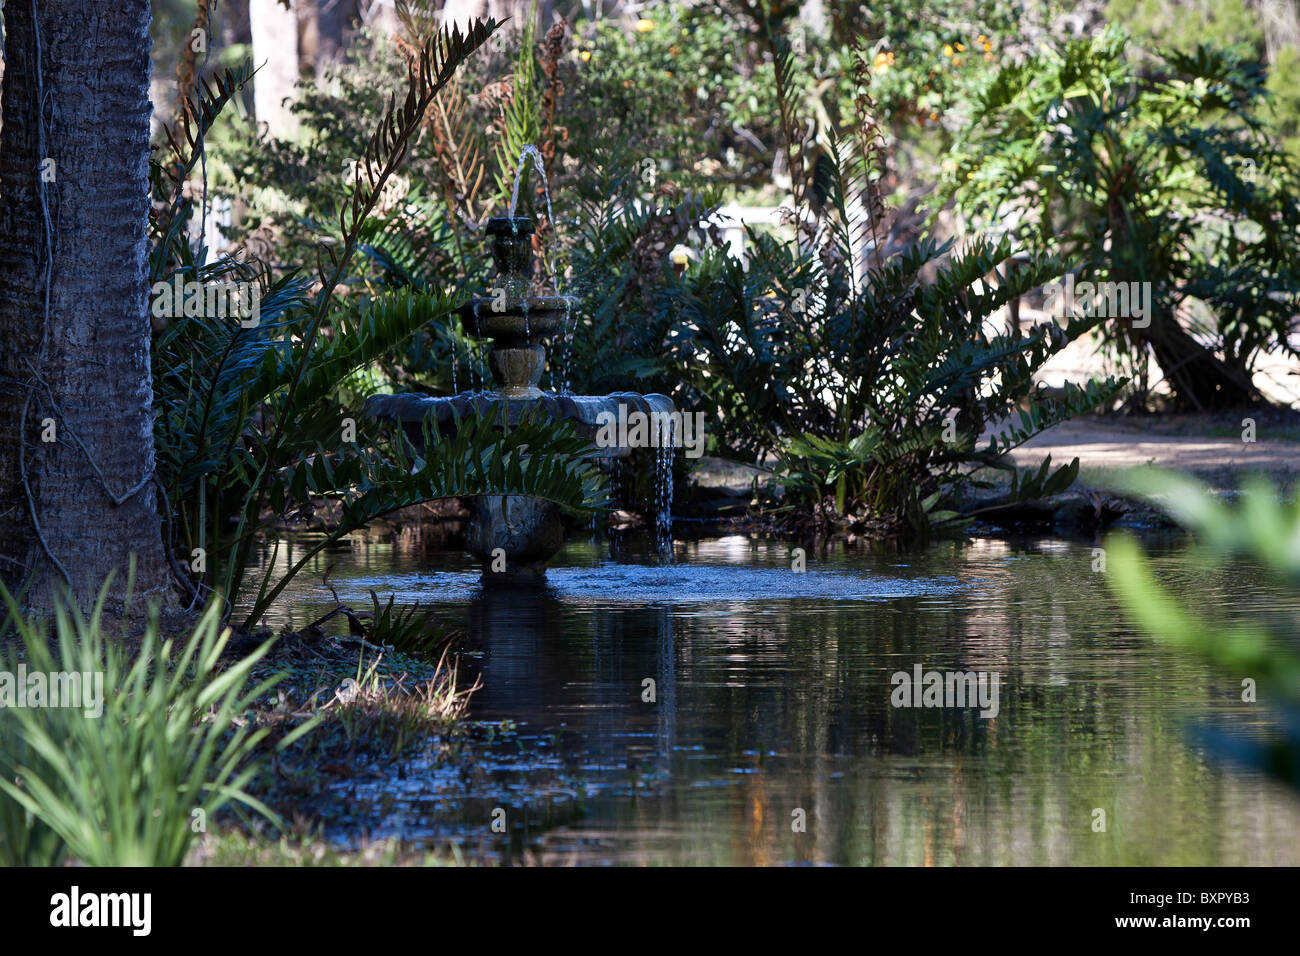 Three tier fountain located in scenic Washington Oaks garden State park in Florida. - Stock Image